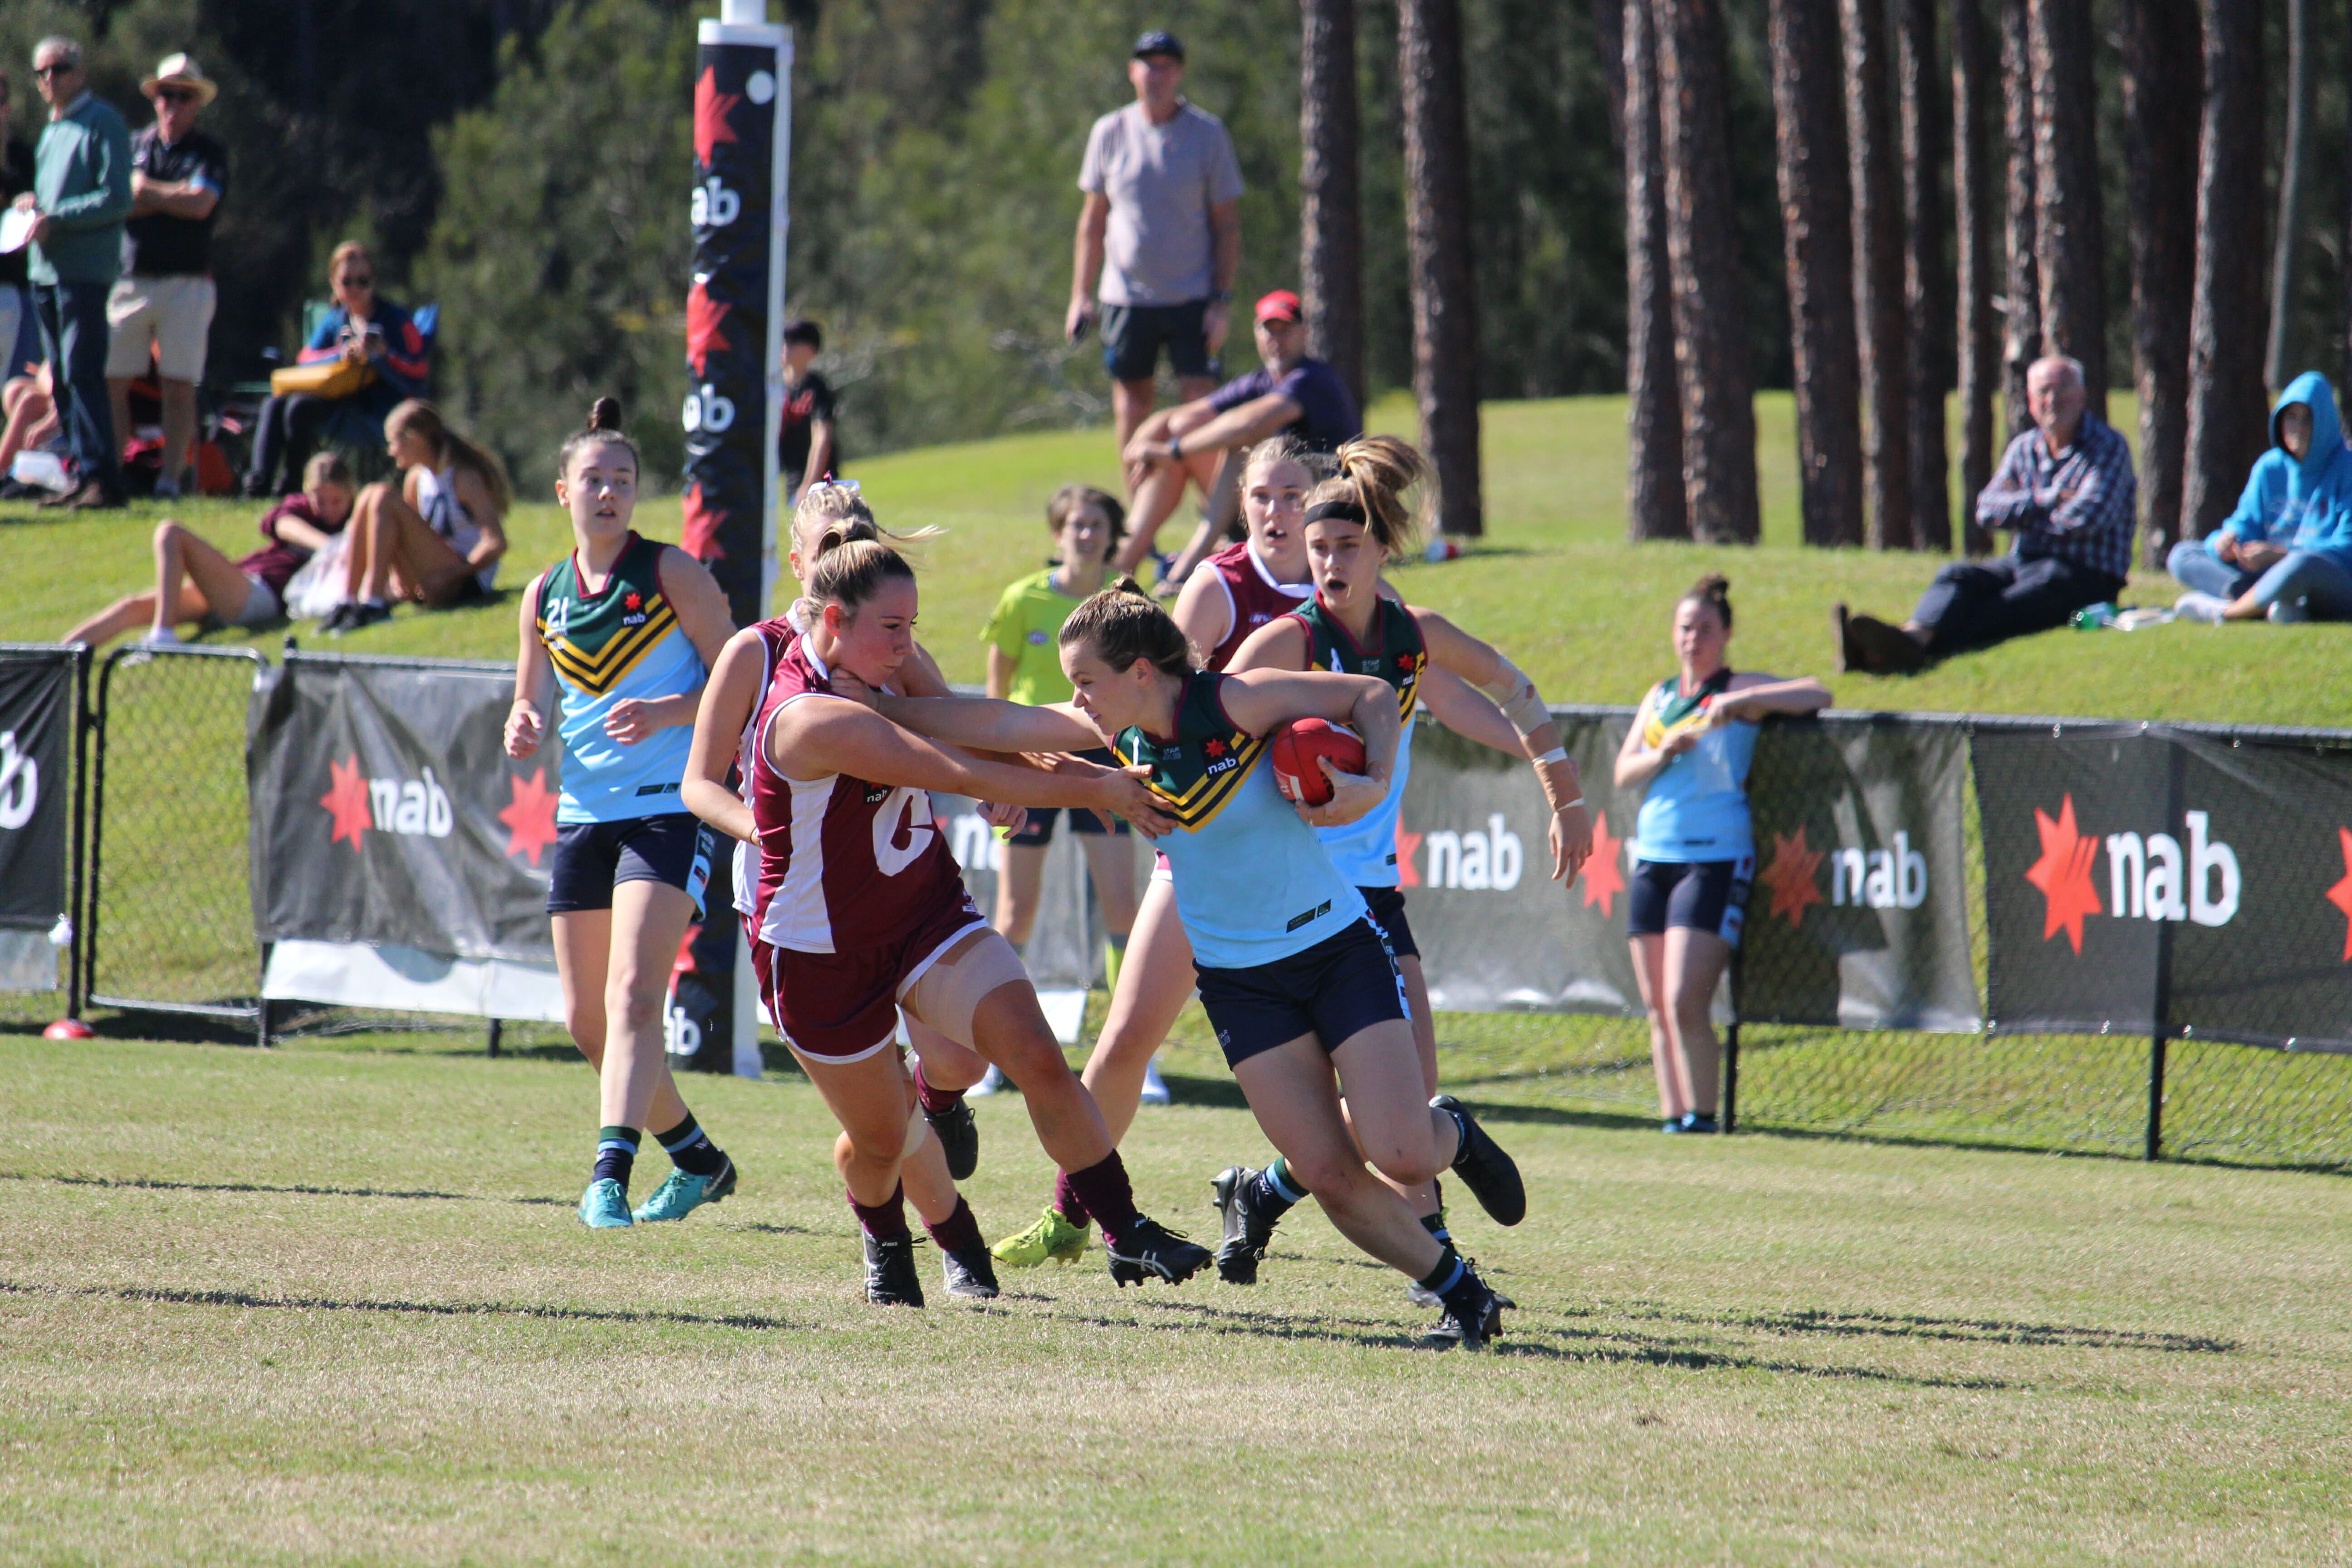 ingrid nielsen Archives - Aussie Rules Draft Central